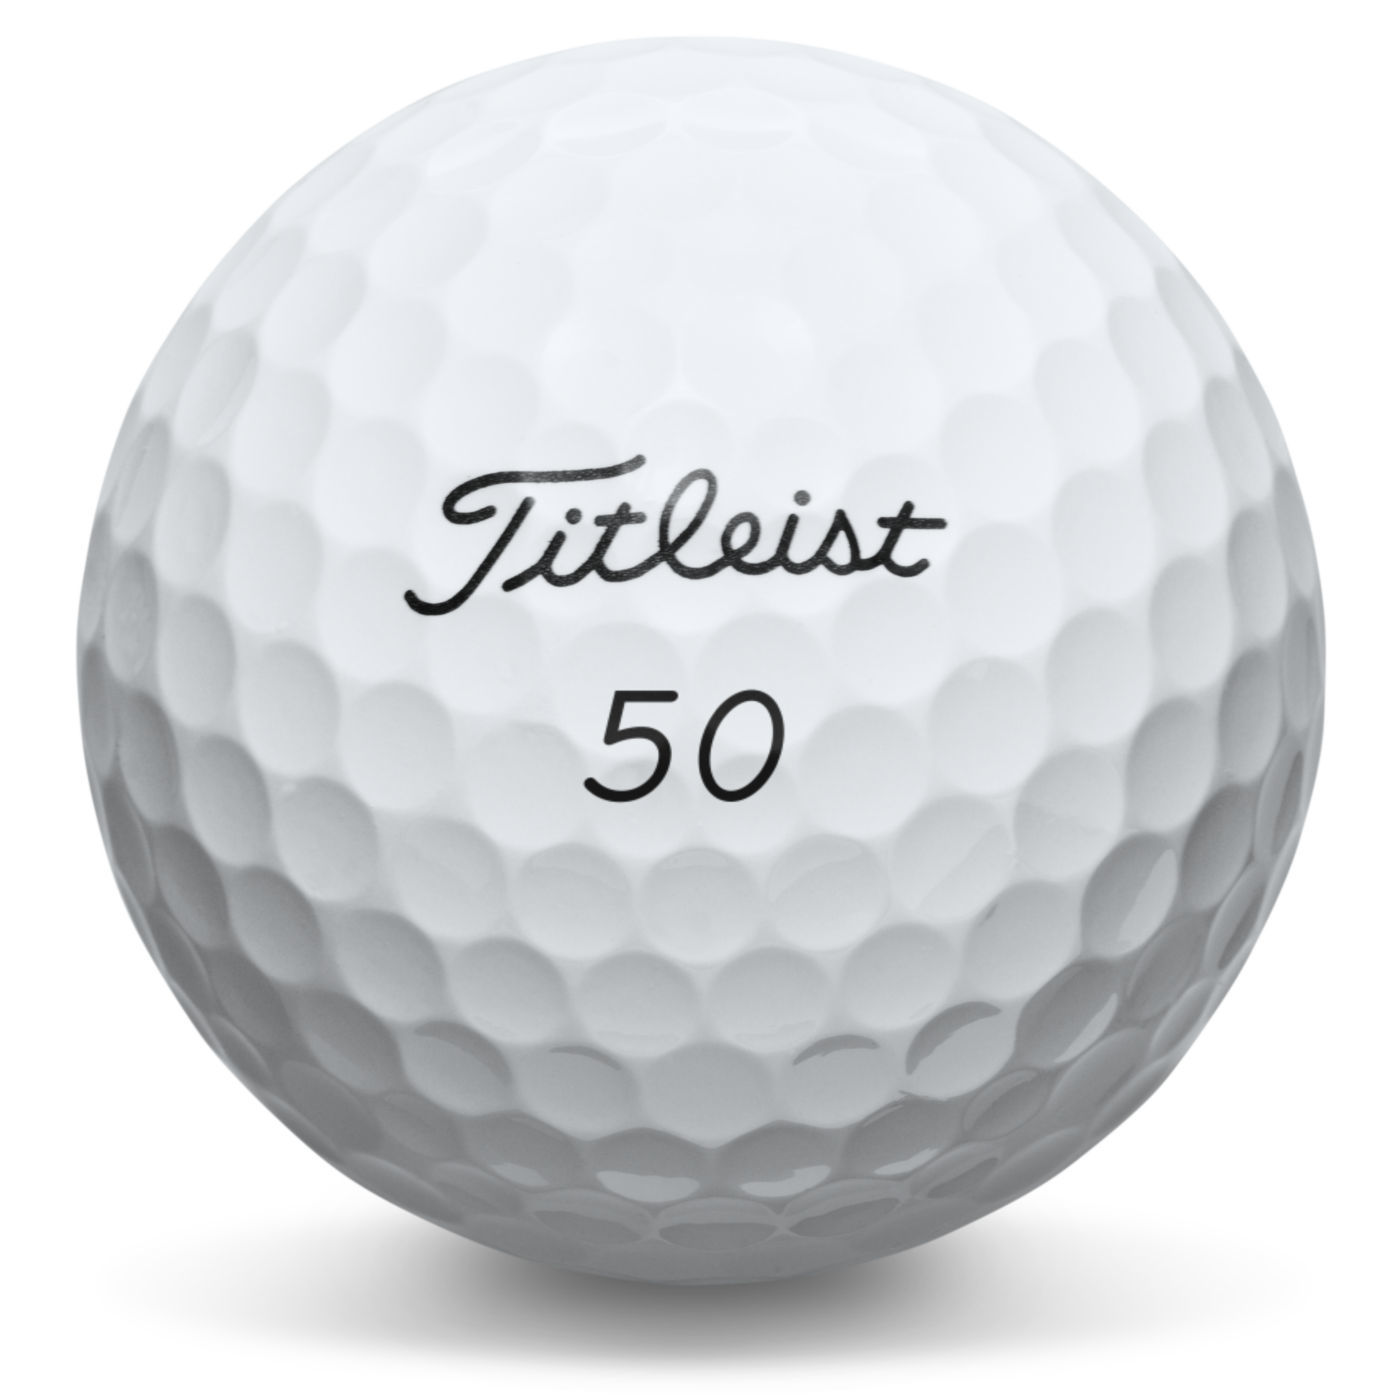 https://www.best4balls.com/pub/media/catalog/product/p/r/pro_v1_special_play_50.jpg